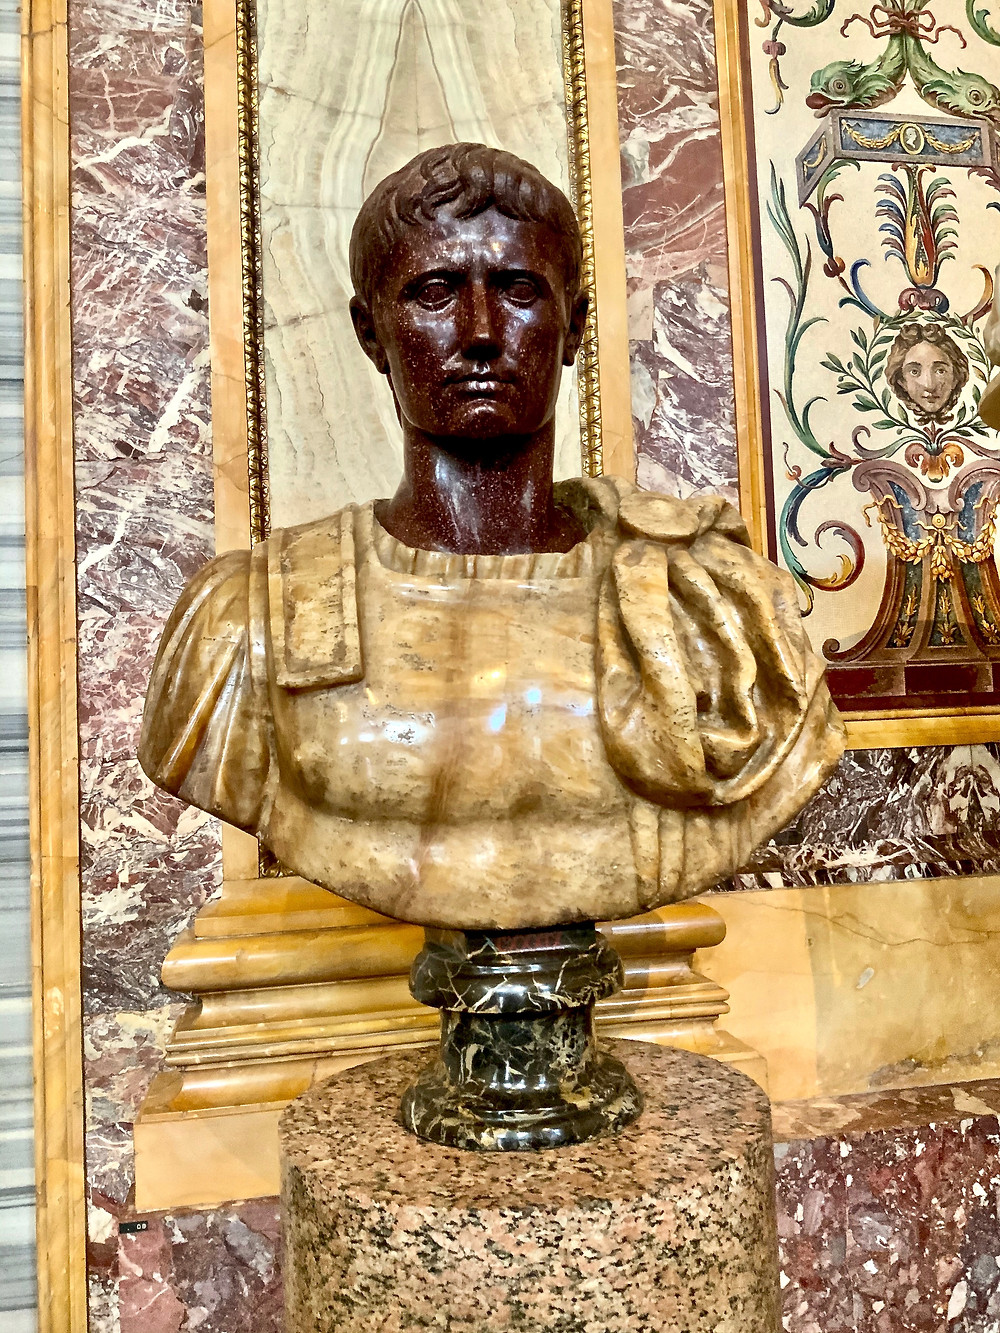 bust from the Emperor's Room of the Borghese Gallery